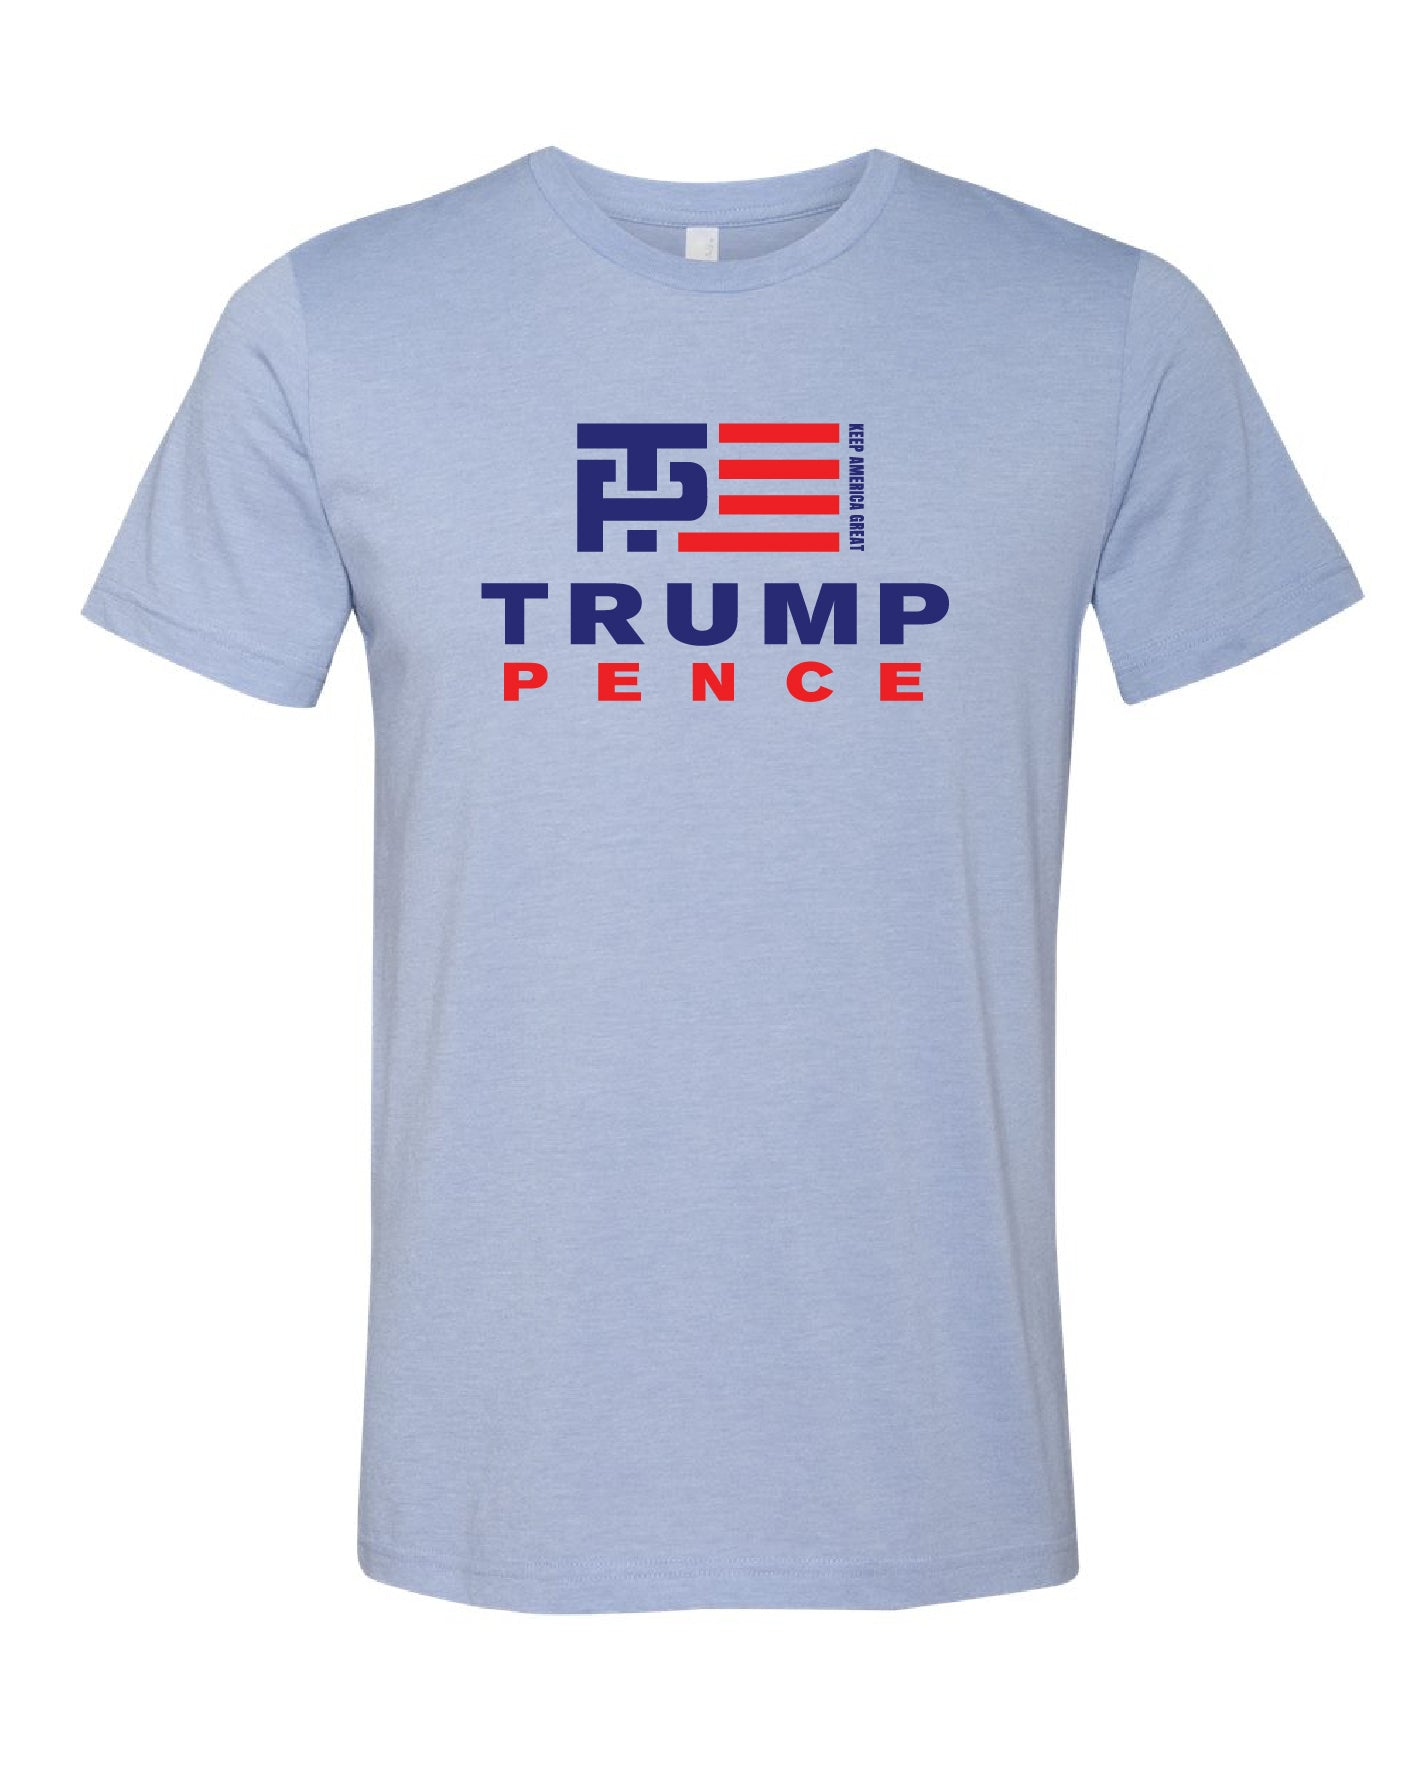 Trump/Pence Light Blue Tee